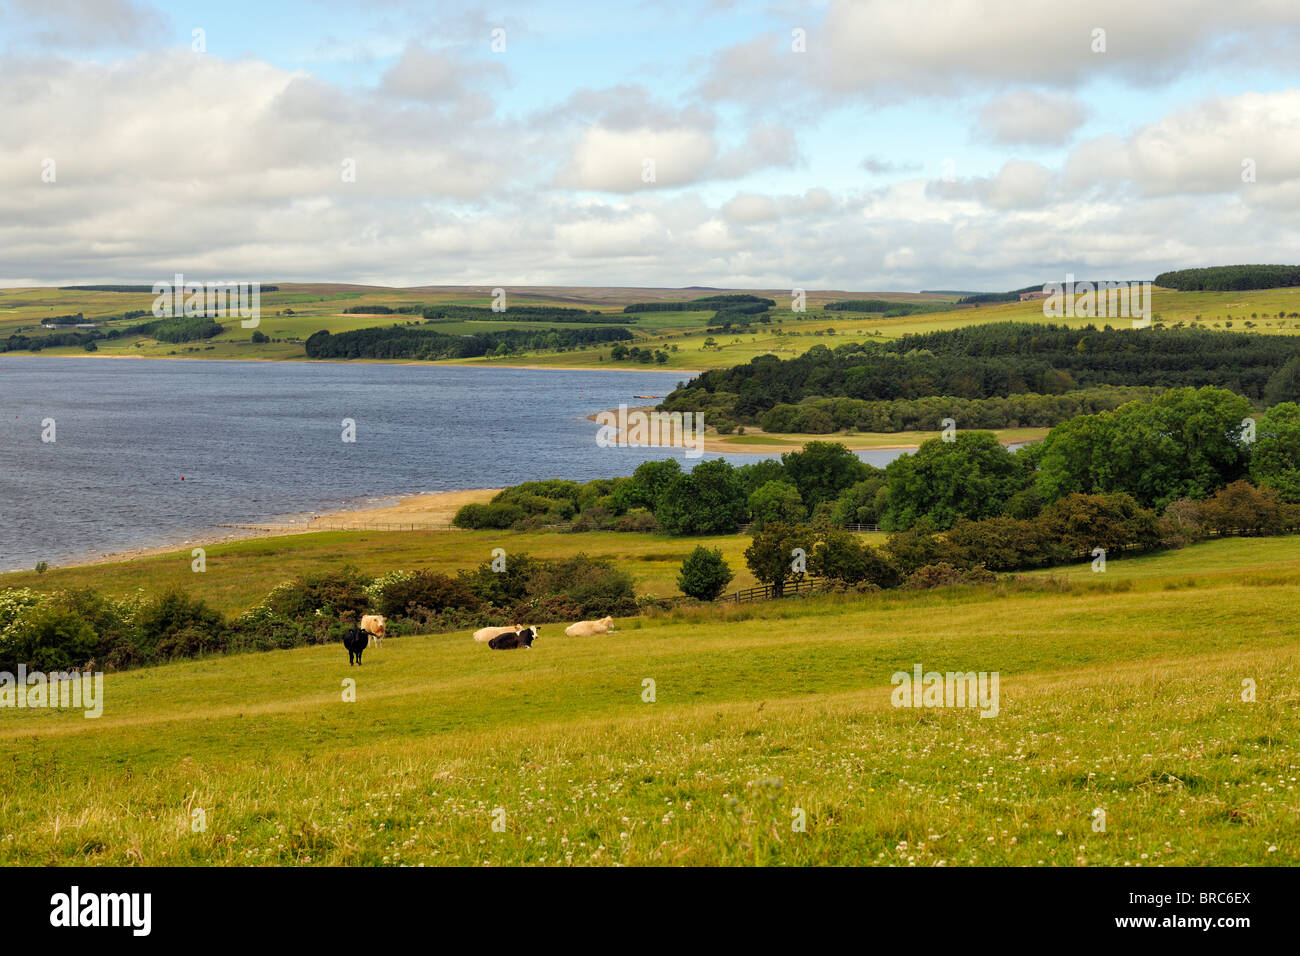 The Derwent reservoir in an area of outstanding natural beauty, Northumberland, England - Stock Image